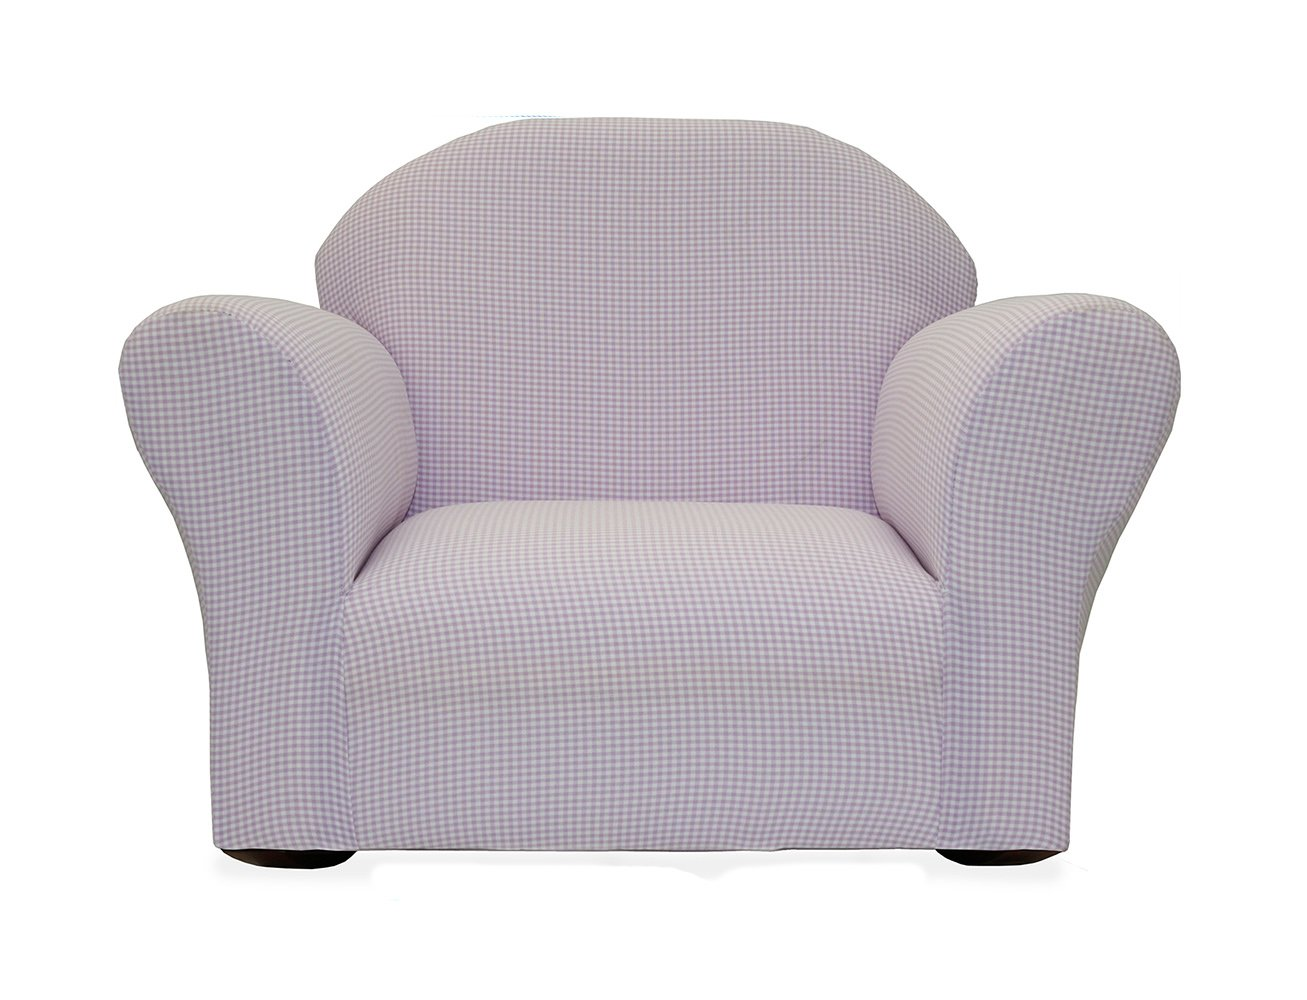 KEET Roundy Rocking Kid's Chair Gingham, Lavender